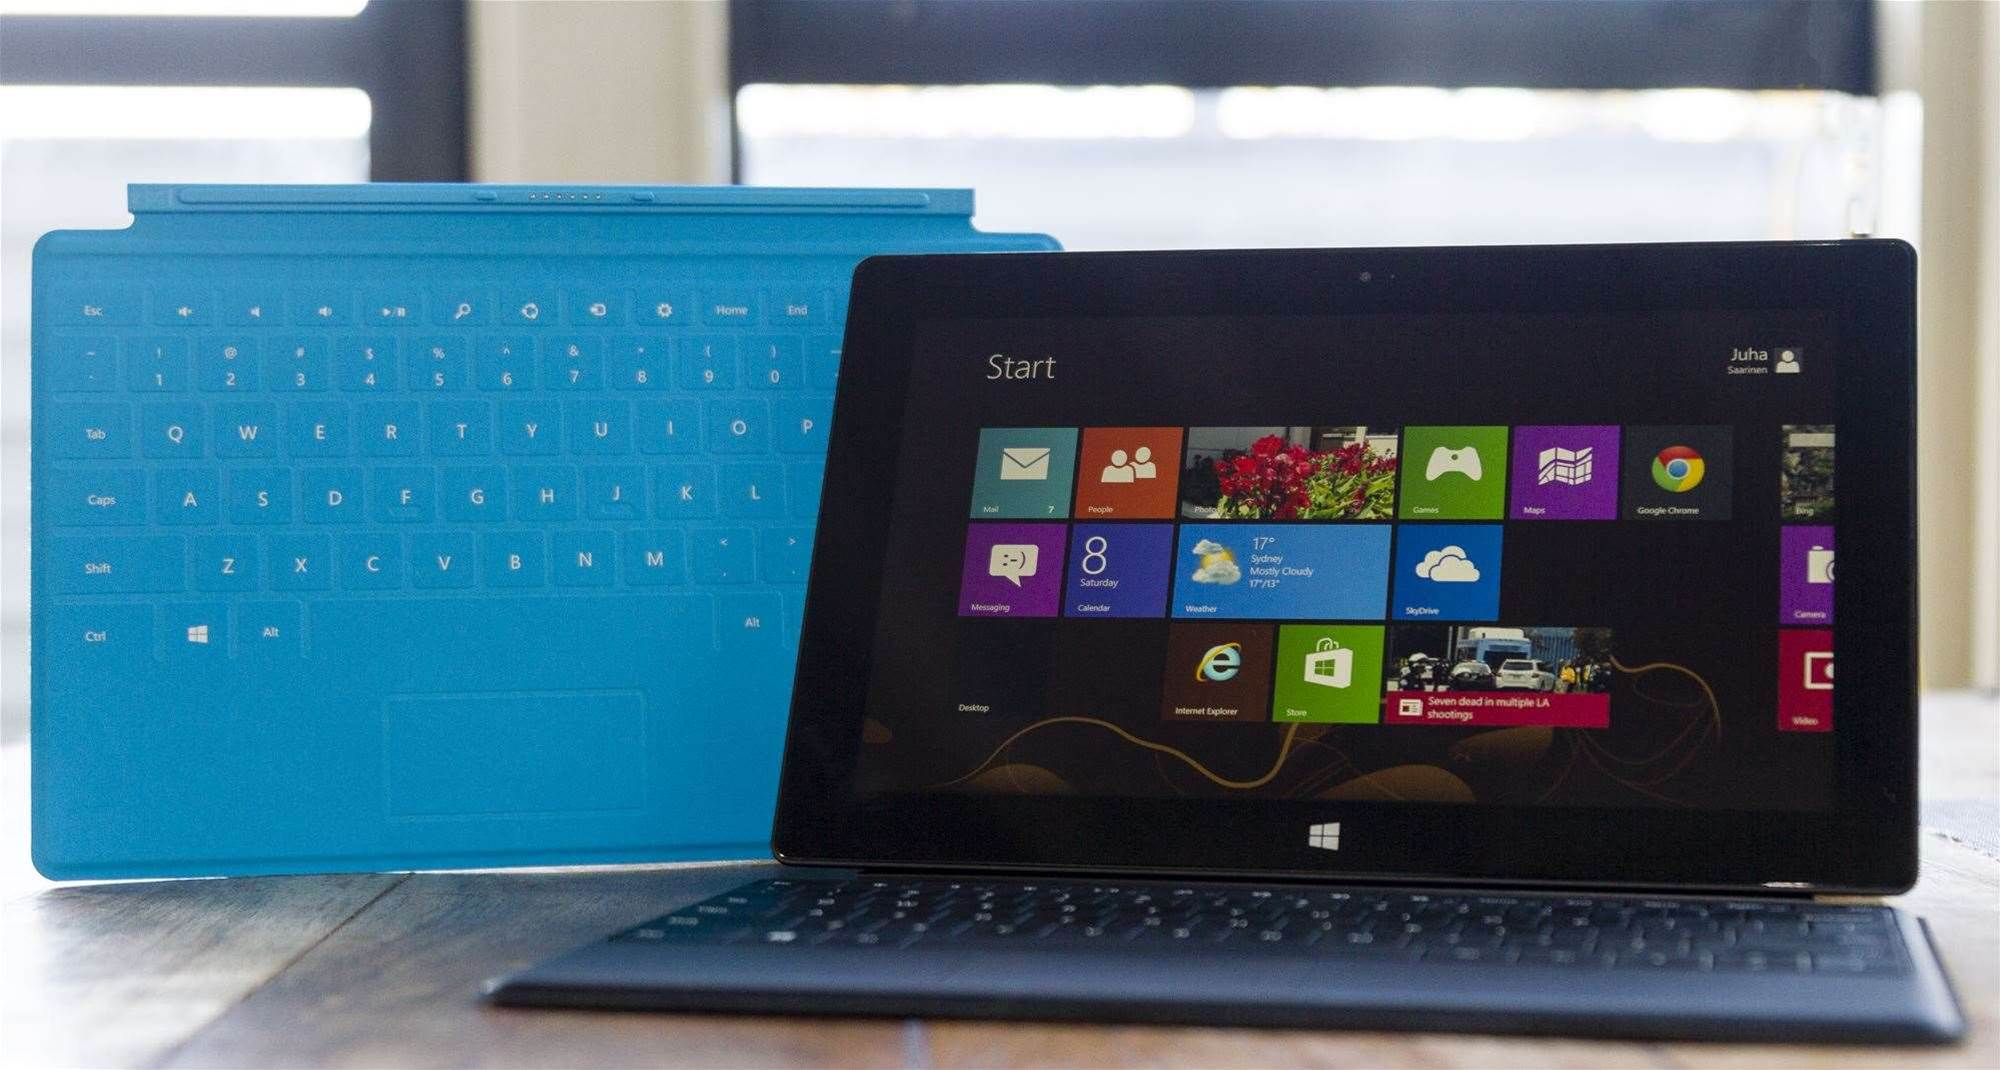 Microsoft Surface Pro with the Touch and Type covers. Photo credit: Juha Saarinen